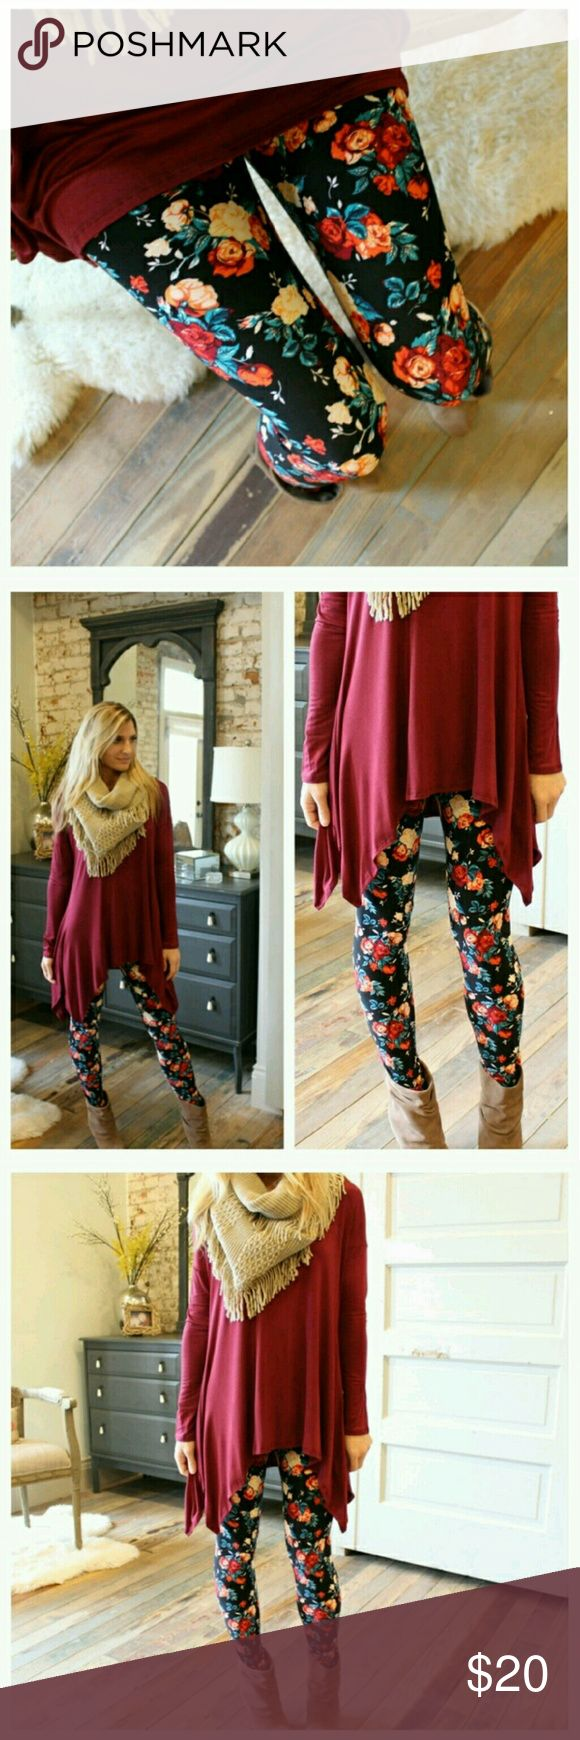 ❤NEW IN❤ Soft Rose floral Print Leggings! Amazingly SOFT rose/floral print leggings! You won't want to take them off! Very trendy for Fall! Looks adorable with the burgundy asymmetrical tunic as pictured, (see listing).  Same style as the my other floral leggings that sold out. Also available in solid black (see listing). See the love notes I have received for Infinity Raine leggings (4th picture)!  Fits up to size 12 comfortably. 92% polyester, 8% spandex. Made in the USA. Price is firm…